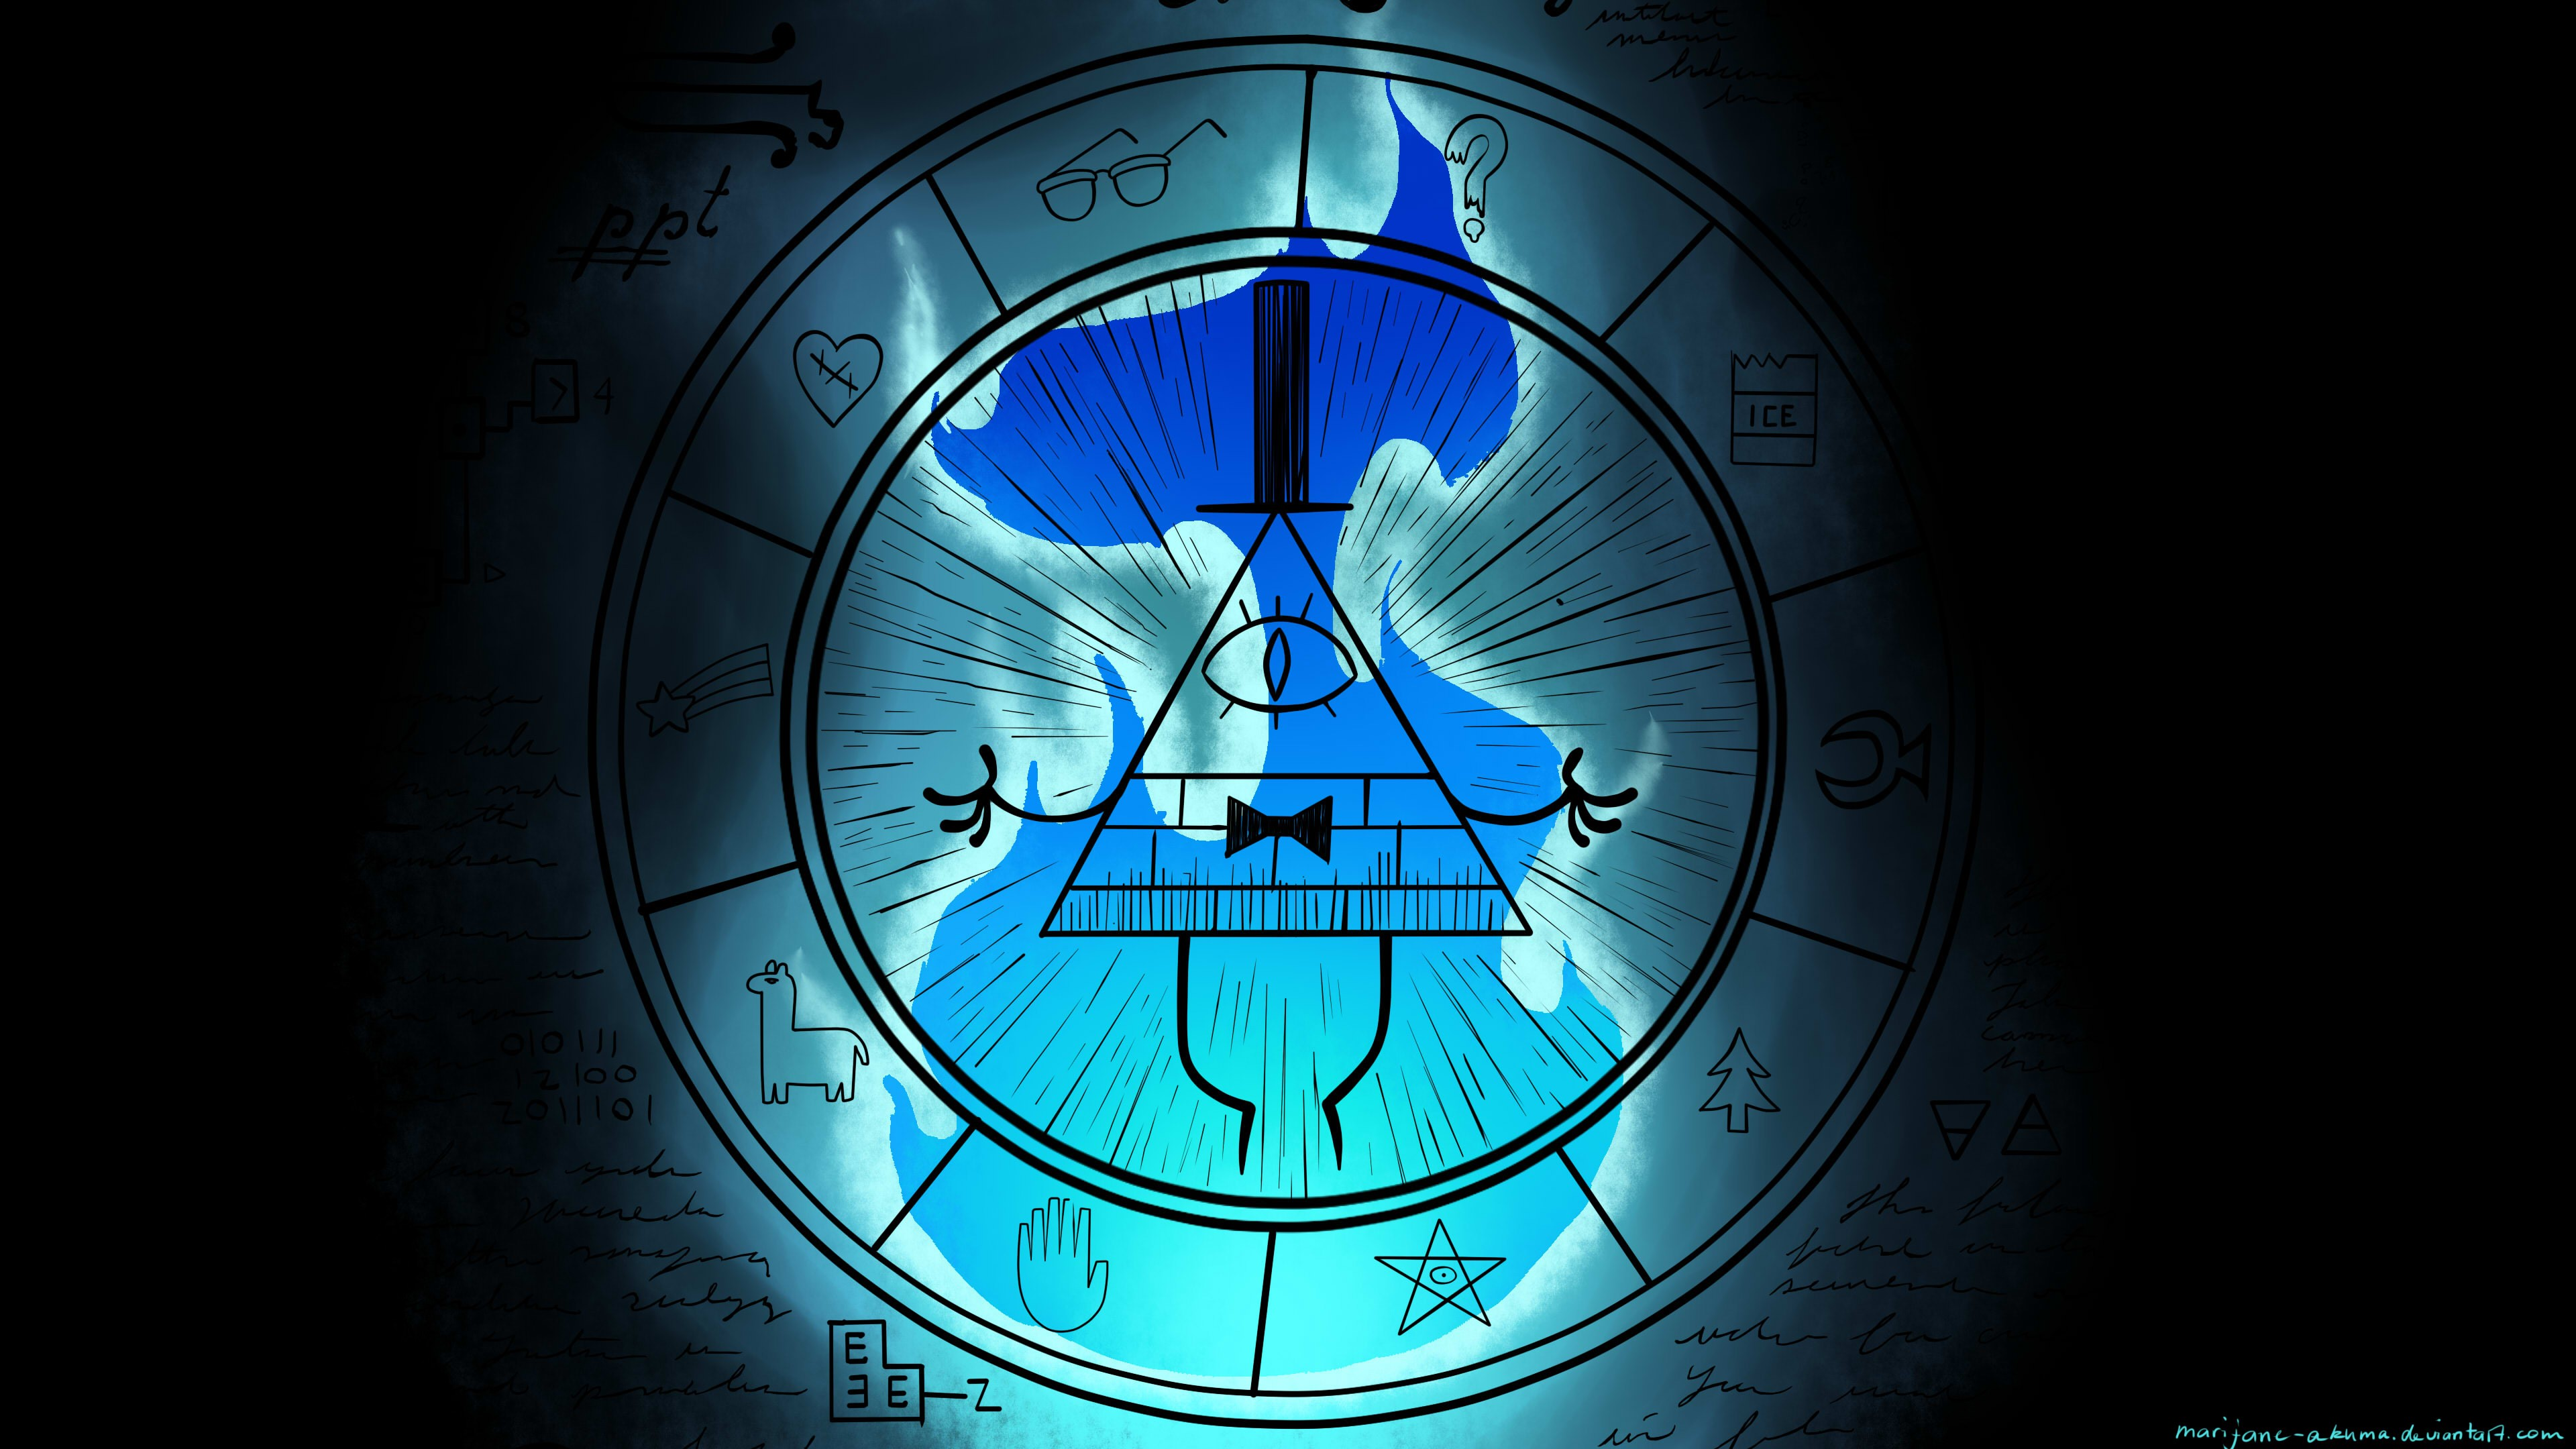 Gravity Falls Wallpaper Hd Android Bill Cipher Wallpaper 183 ① Download Free Awesome Full Hd